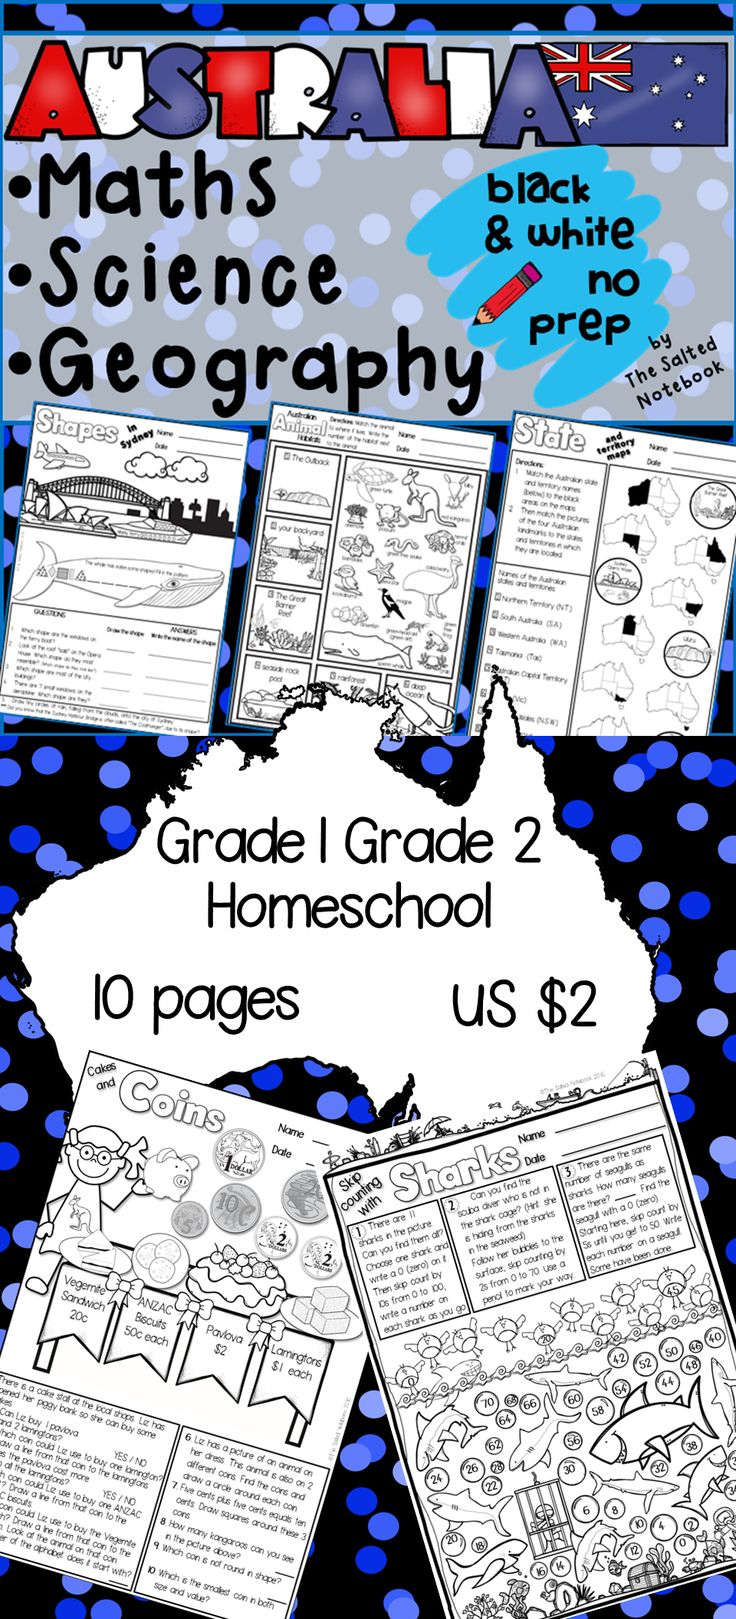 10 black and white, no prep, maths, science & geography worksheets, plus answer sheets. The activities incorporate Australian cultural themes and use Australian spelling, terminology and money. The majority of the activities are aligned to the grade 1 Australian curriculum content descriptions, however some of the activities may be suitable for children up to grade 3 level.